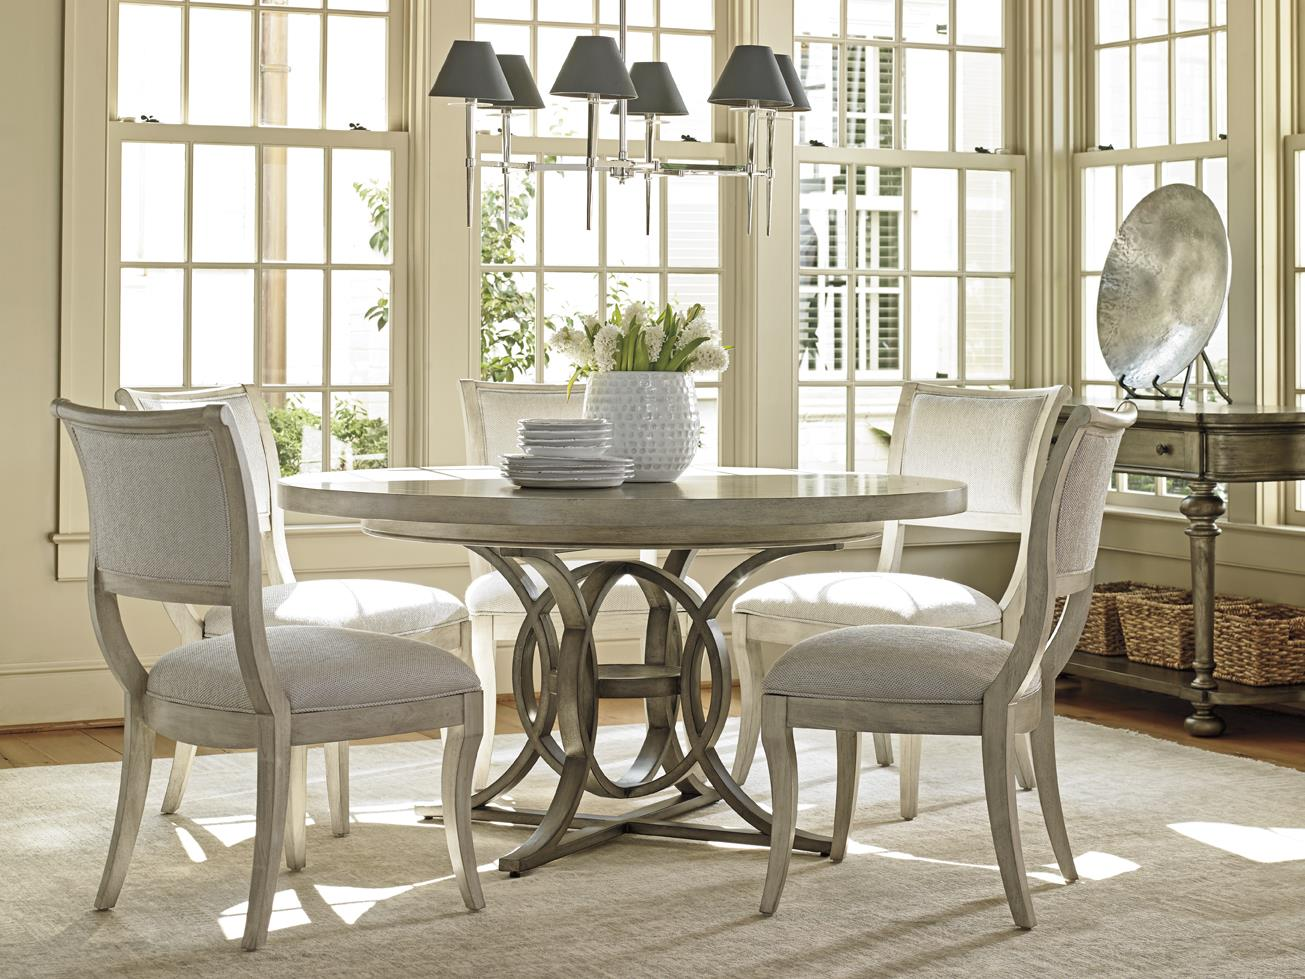 Lexington Oyster Bay Formal Dining Room Group - Item Number: 714 Formal Dining Room Group 1